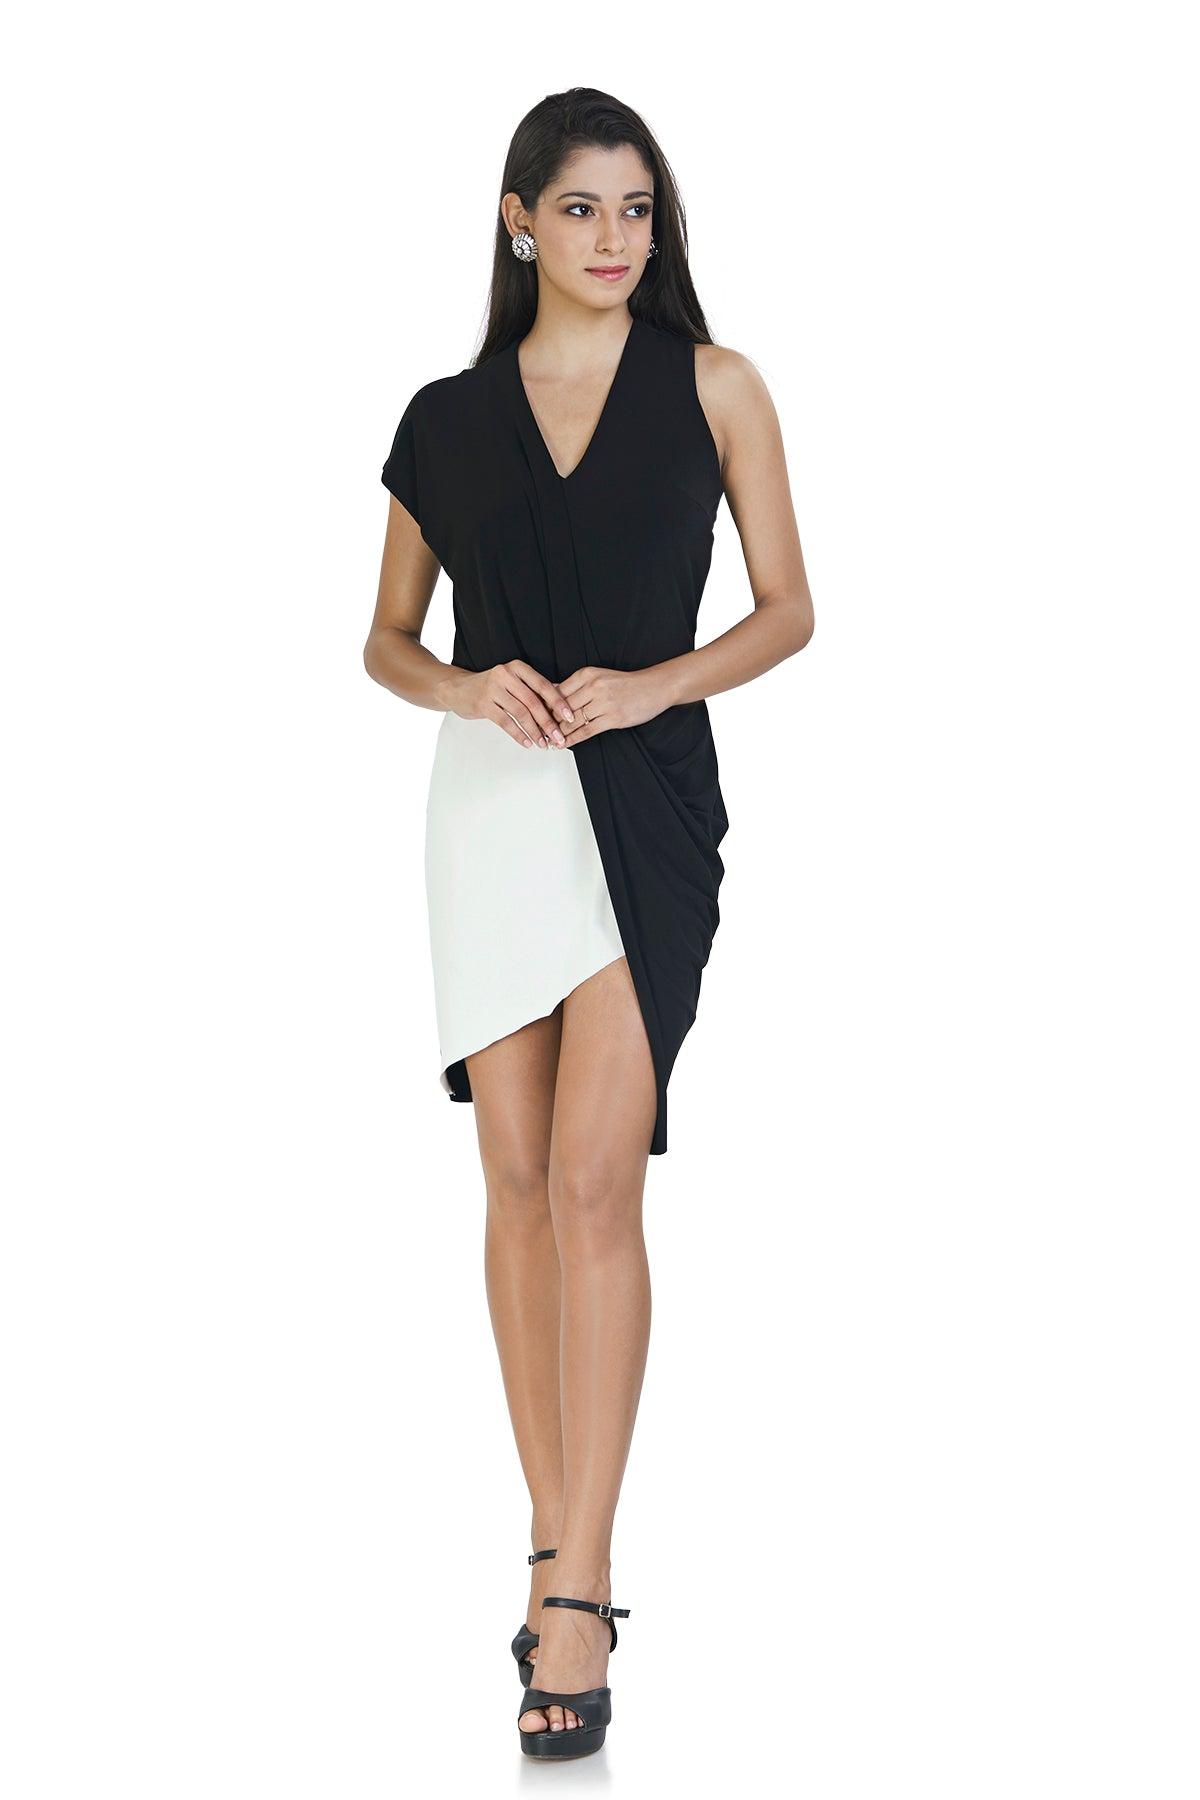 Get the best of both worlds, black & white, with this monochrome assymetrical patterened dress.